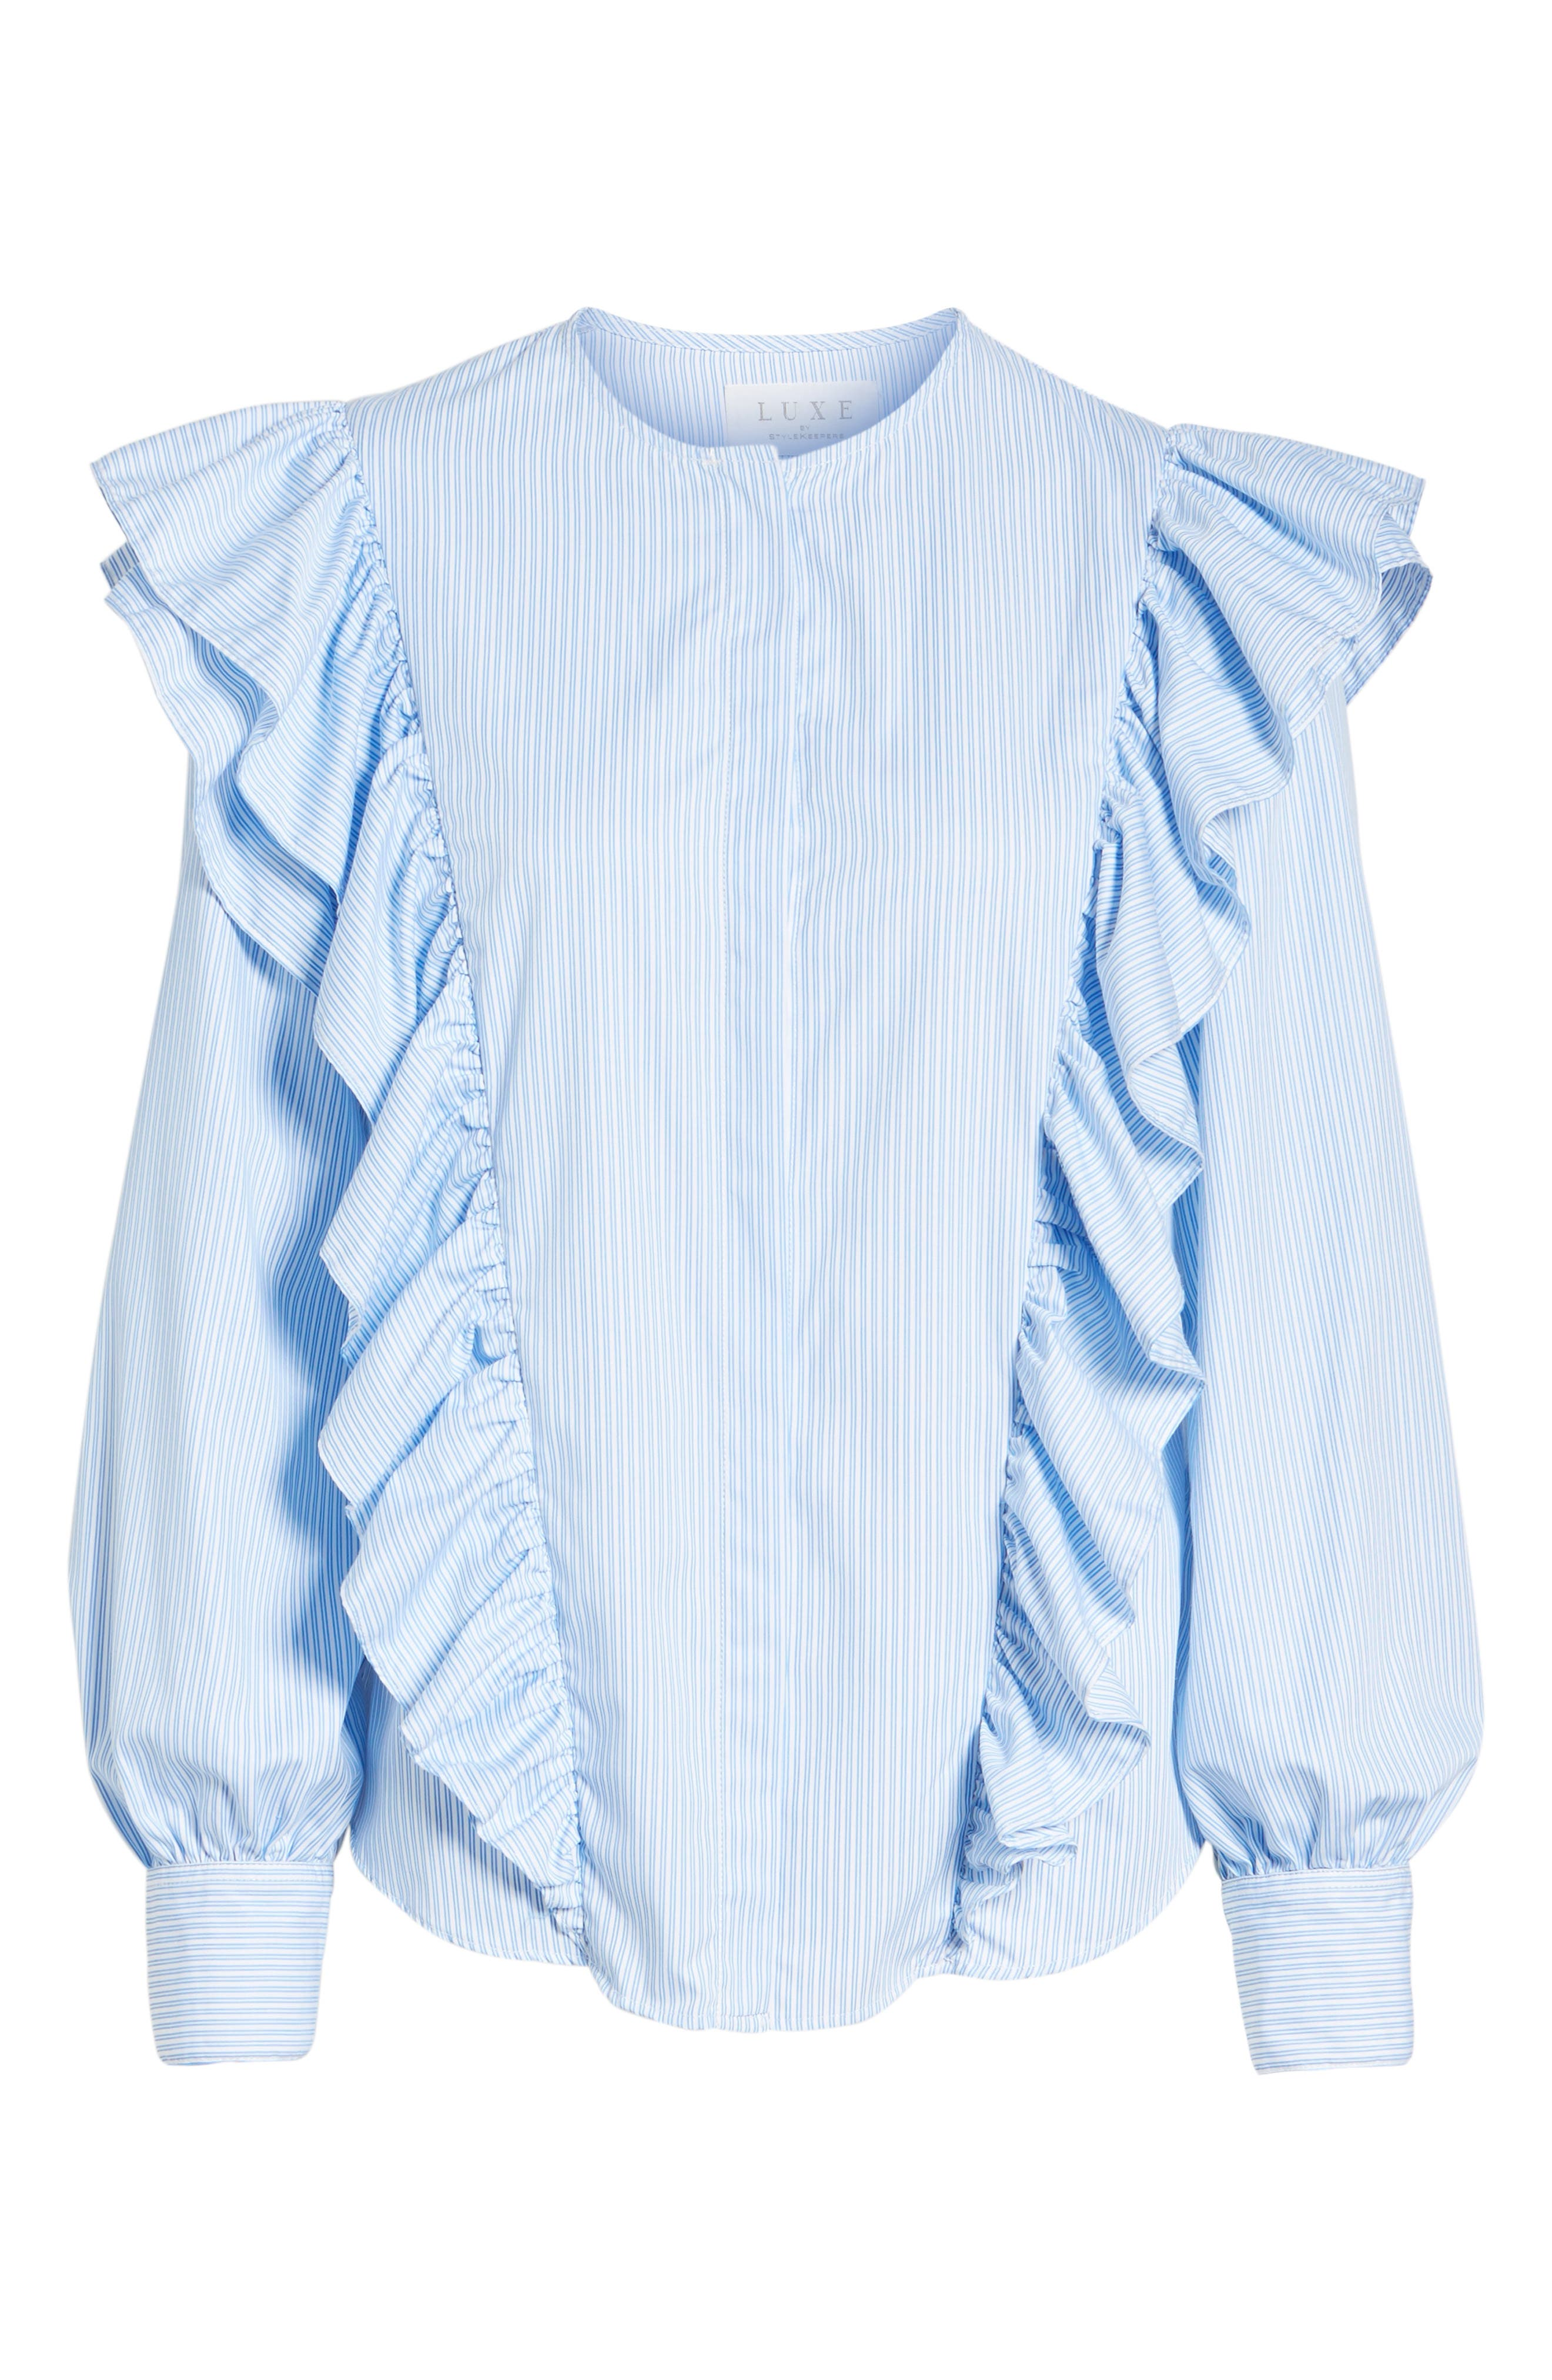 Girl Meets Boy Ruffle Top,                             Alternate thumbnail 7, color,                             Striped Blue